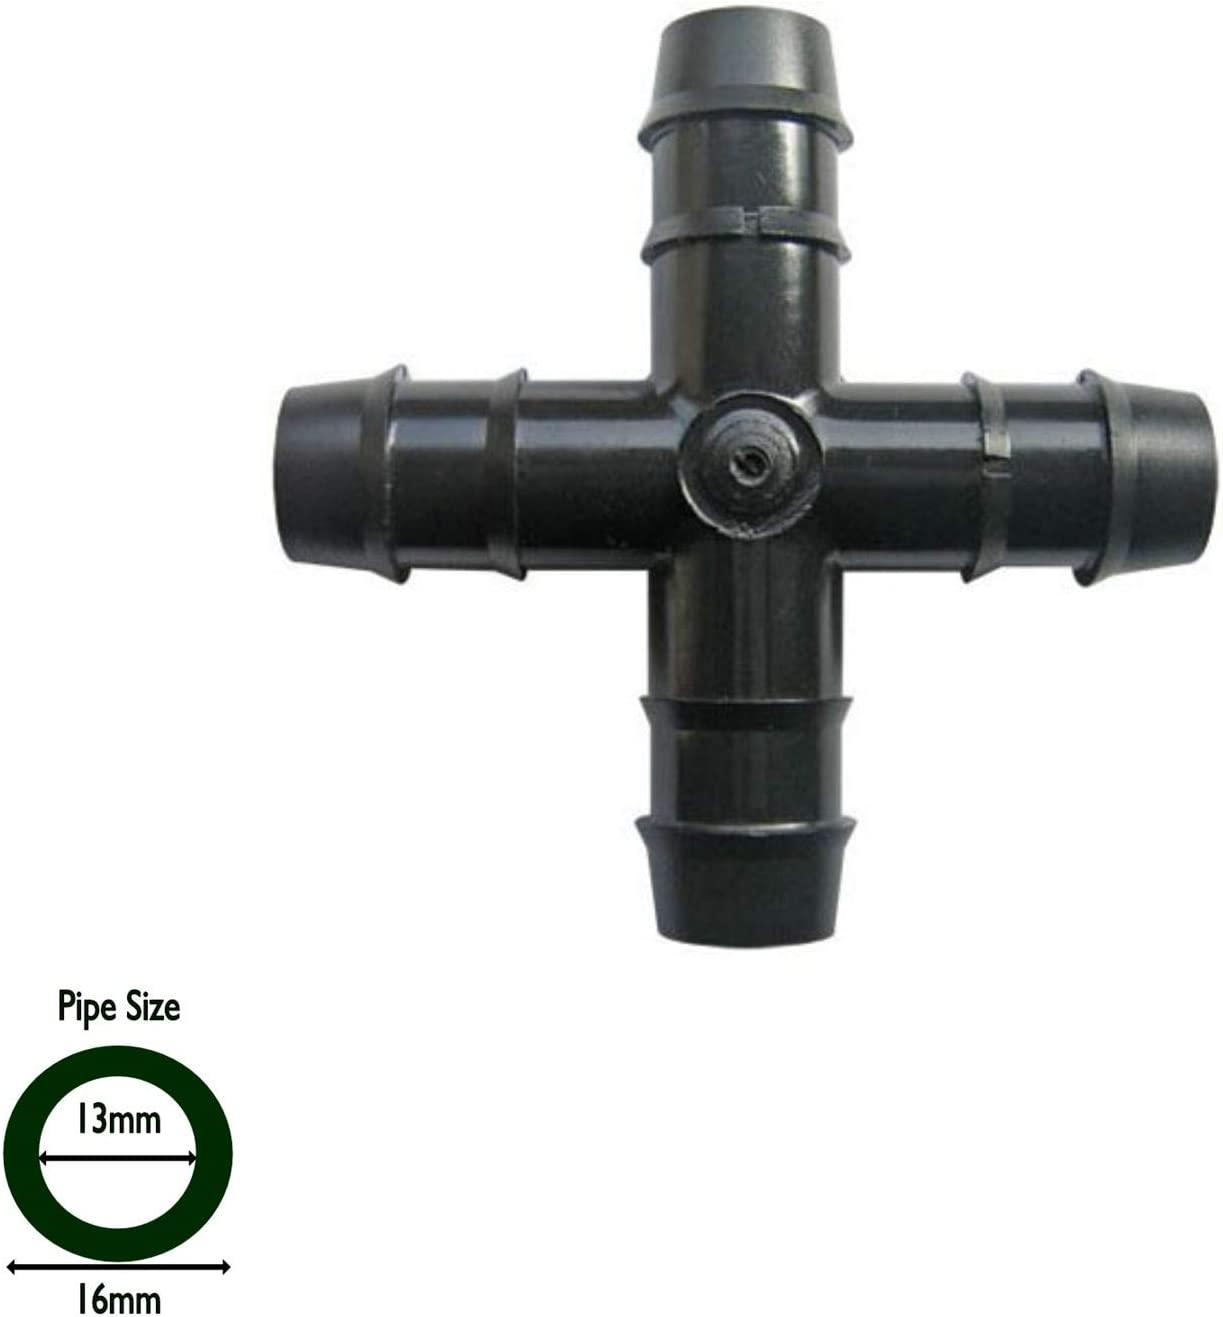 Hortafix Pipe Cross 13mm PK 5 Irrigation leaky and porous pipe connector ID